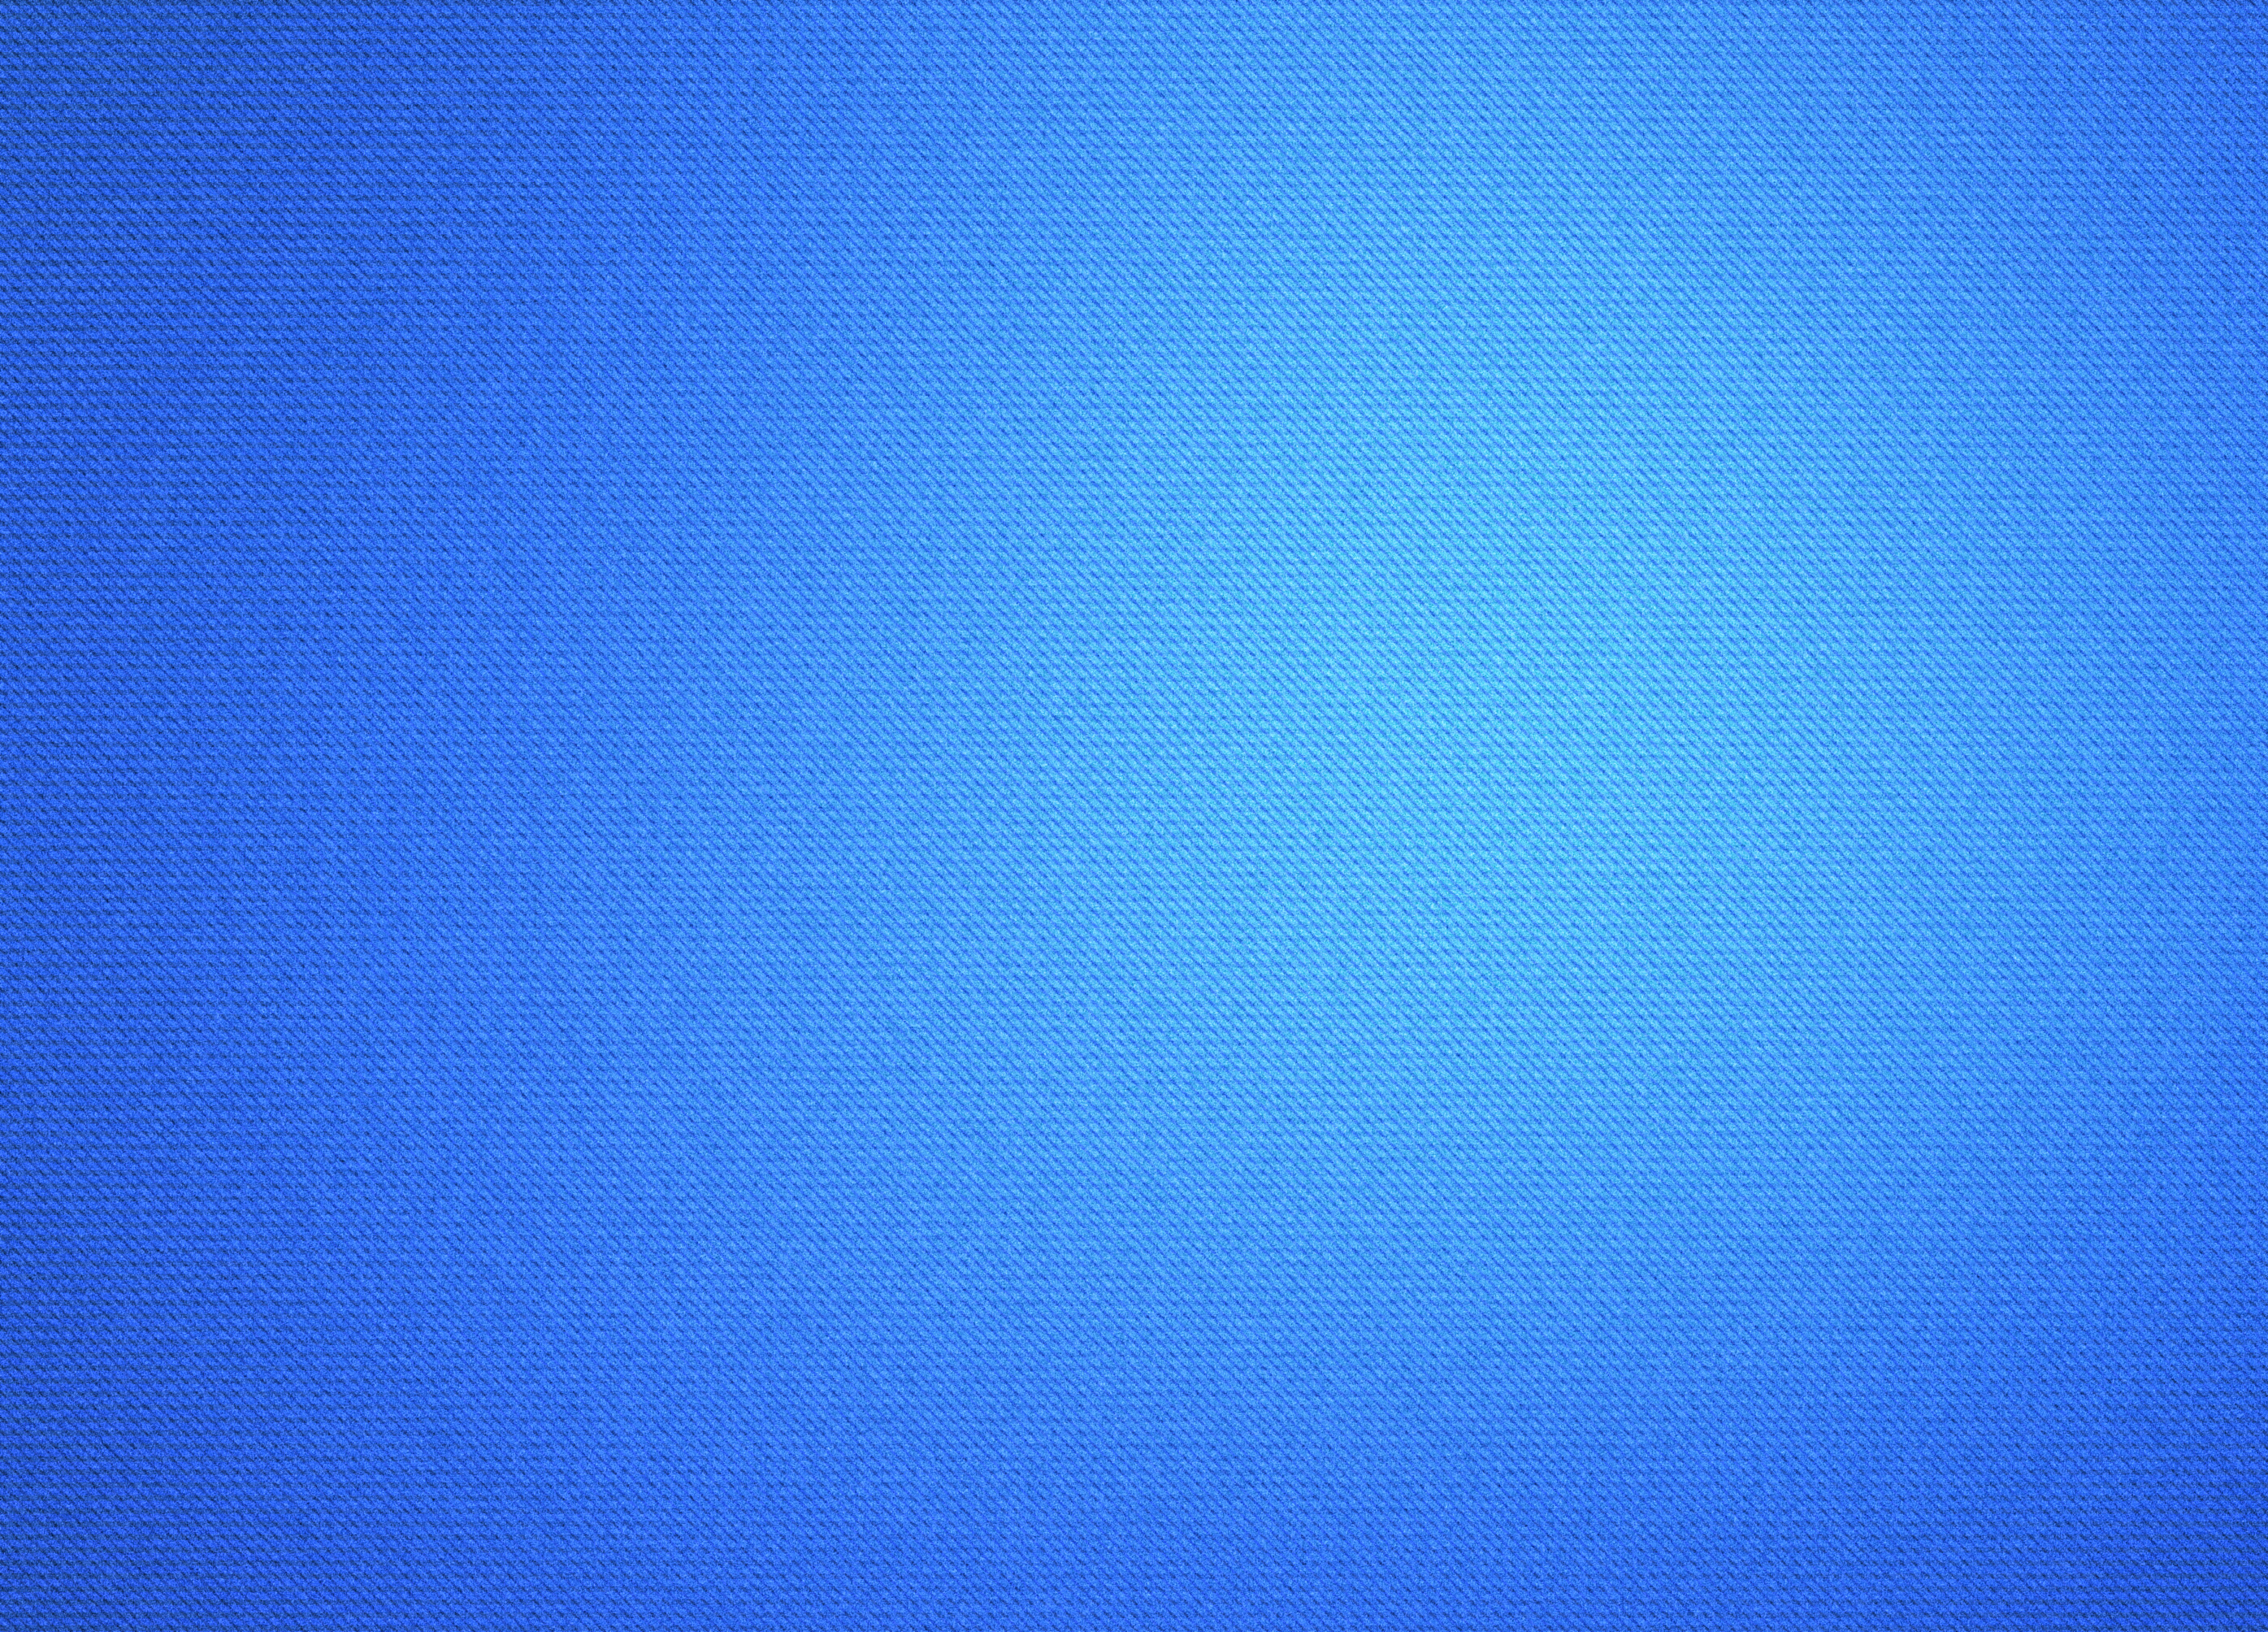 Blue fabric background texture photo